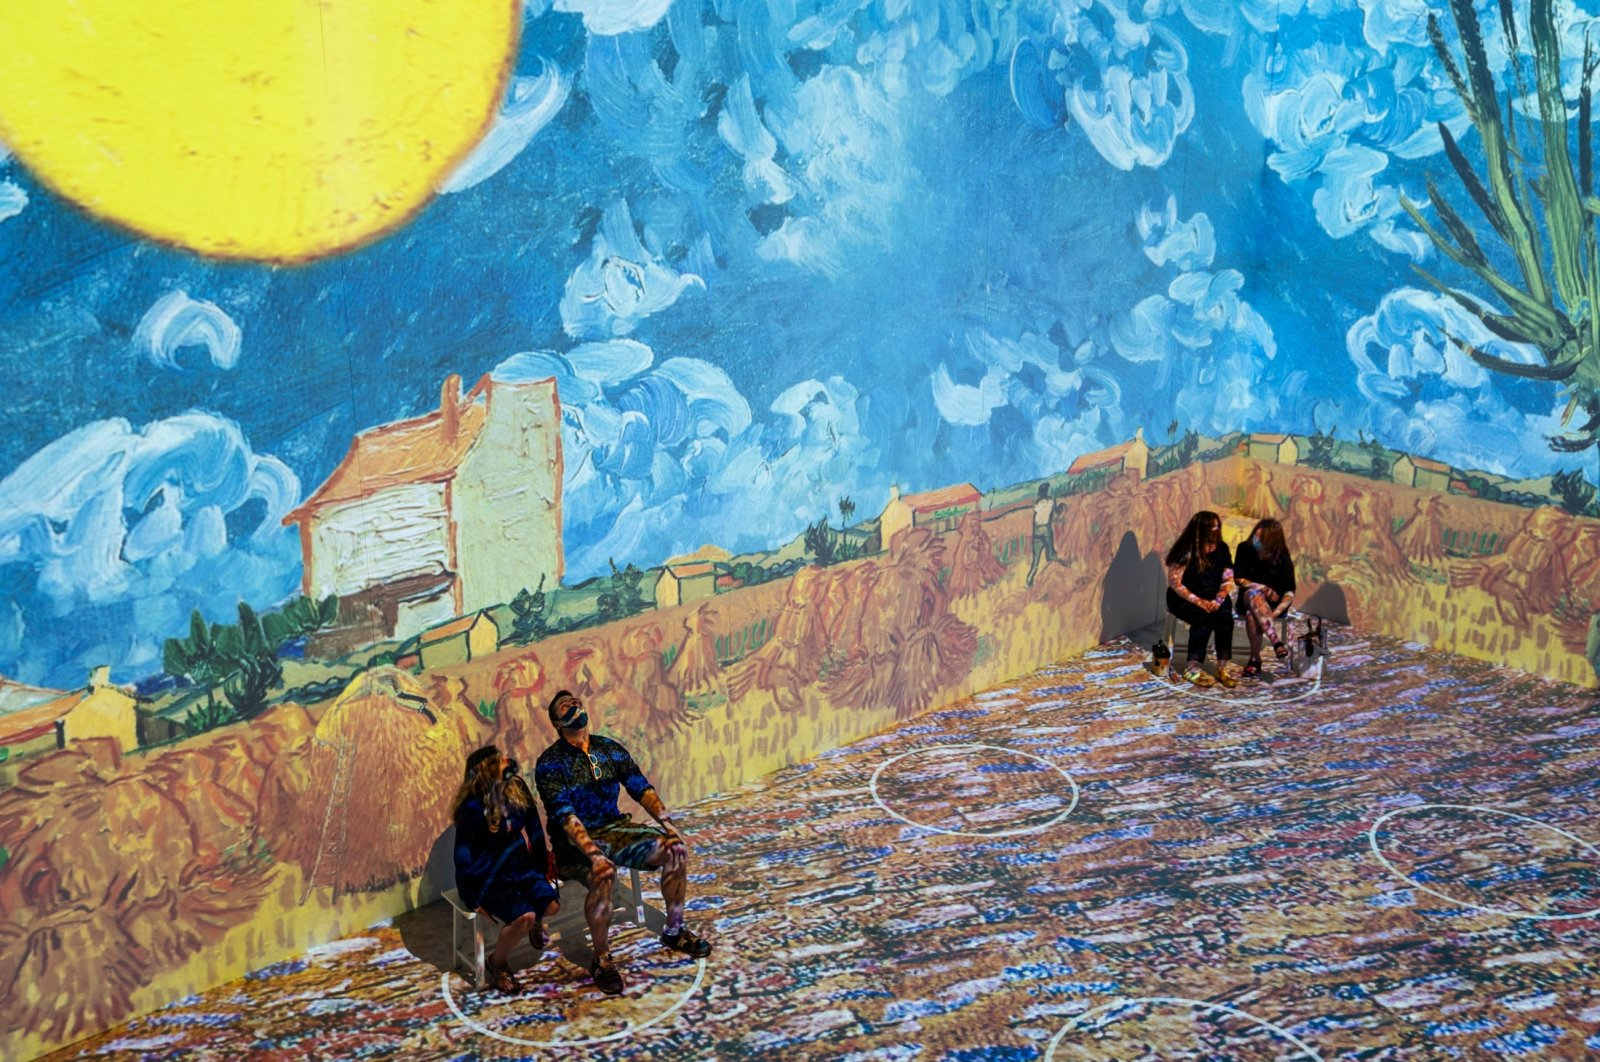 """Projections of selected works of celebrated painter Vincent Van Gogh are displayed at a preview of the """"Immersive Van Gogh"""" exhibit at Pier 36 in New York, U.S., June 4, 2021. (AP Photo)"""